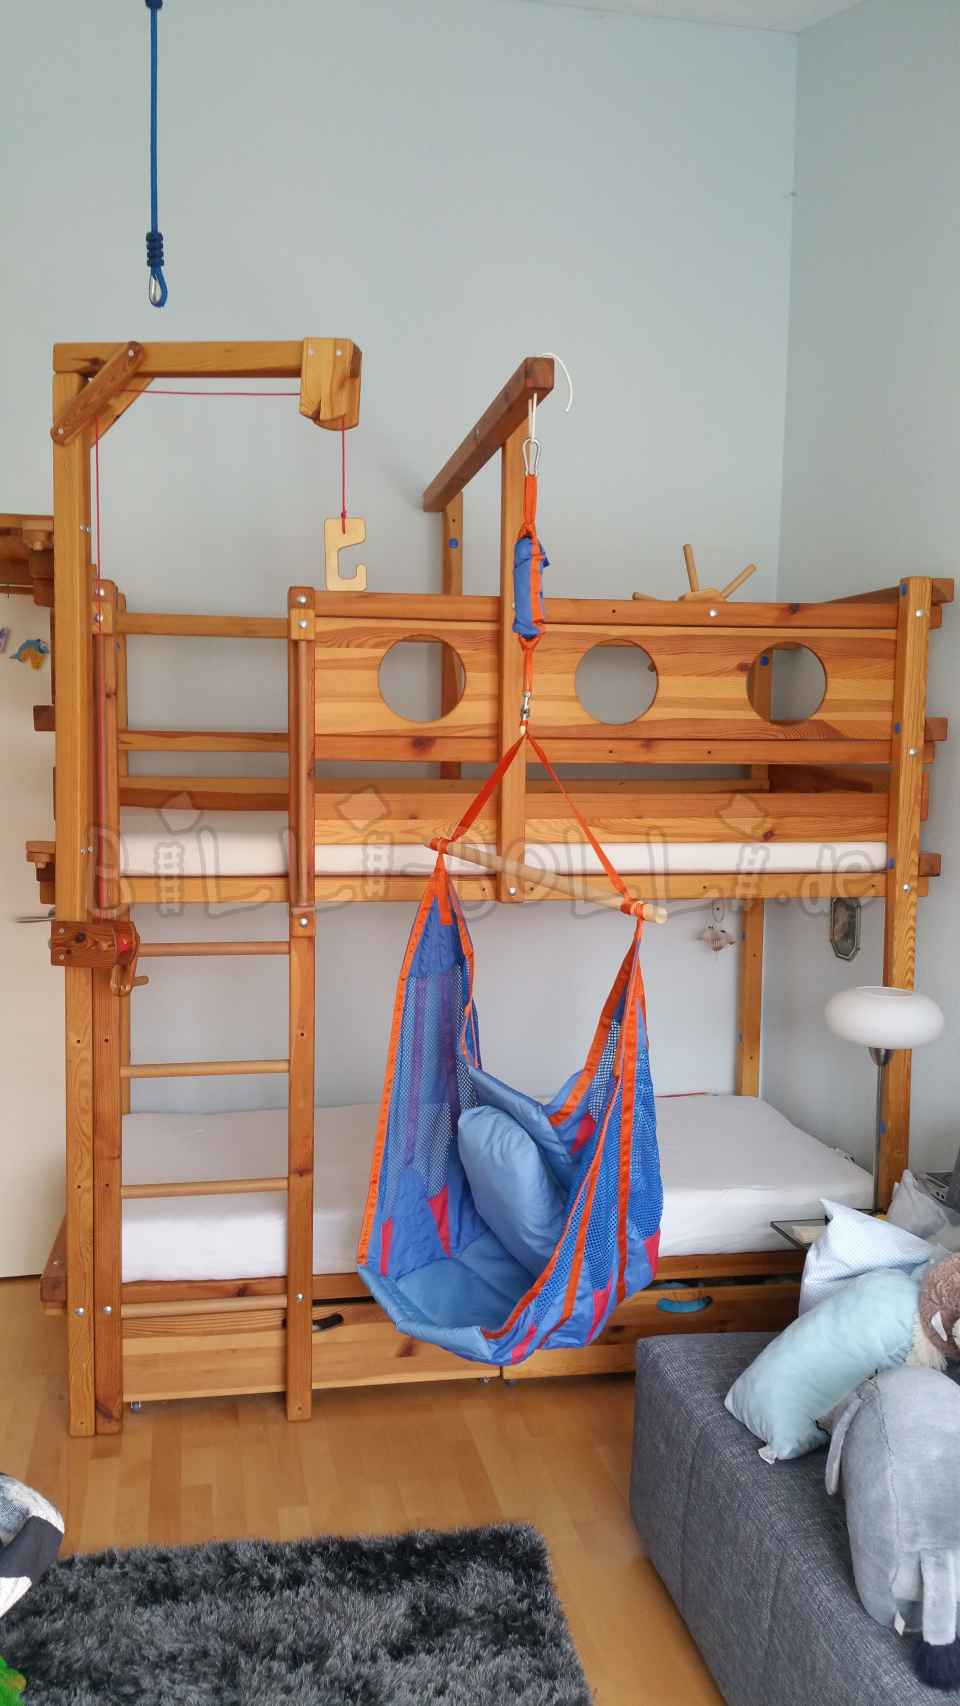 Billi Bolli Bunk Bed (second hand bunk bed)